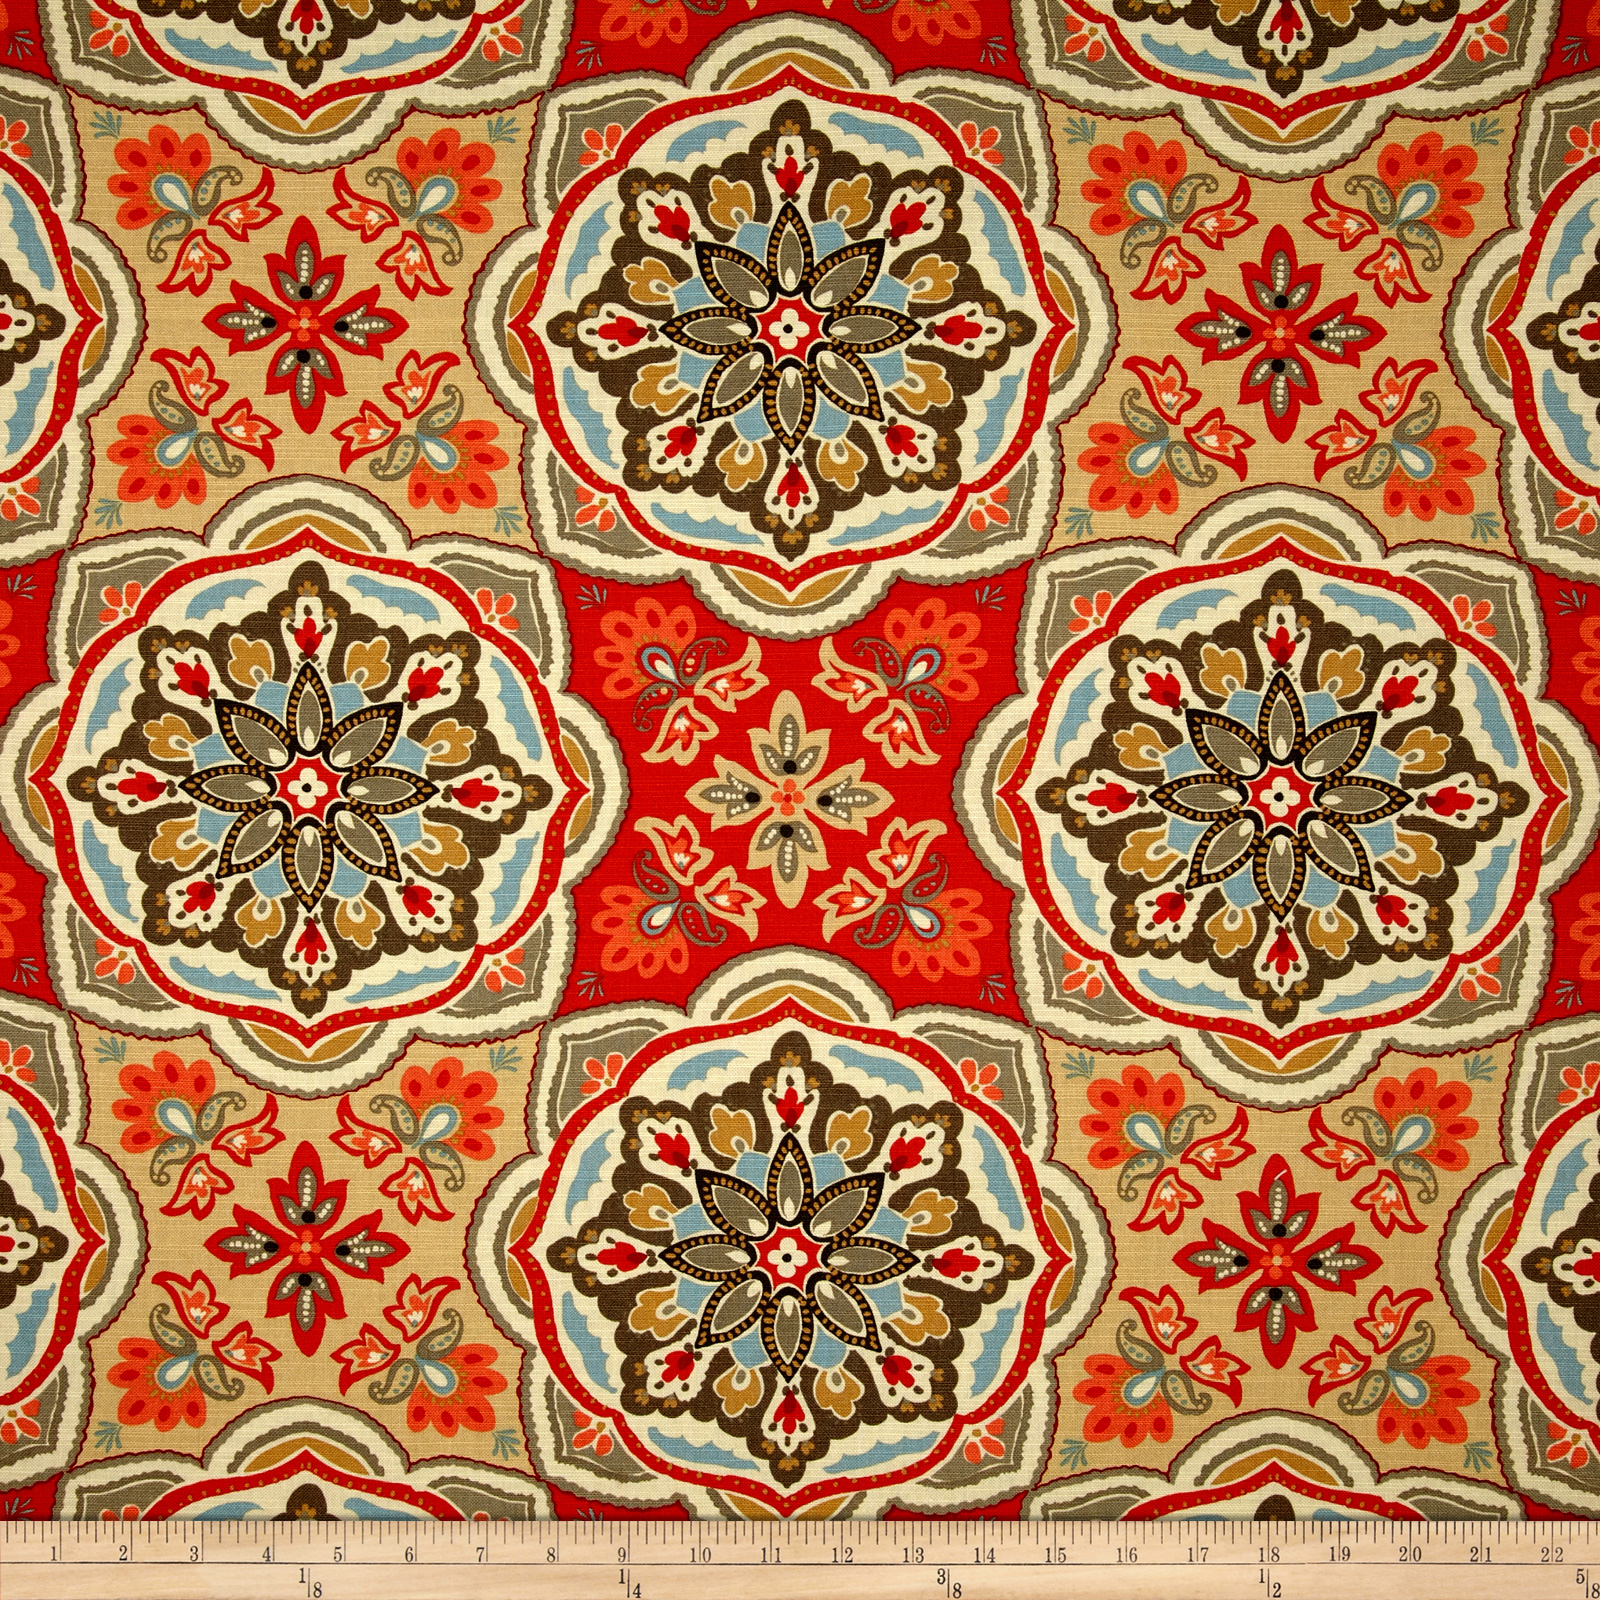 Waverly Tapestry Tile Clay Fabric